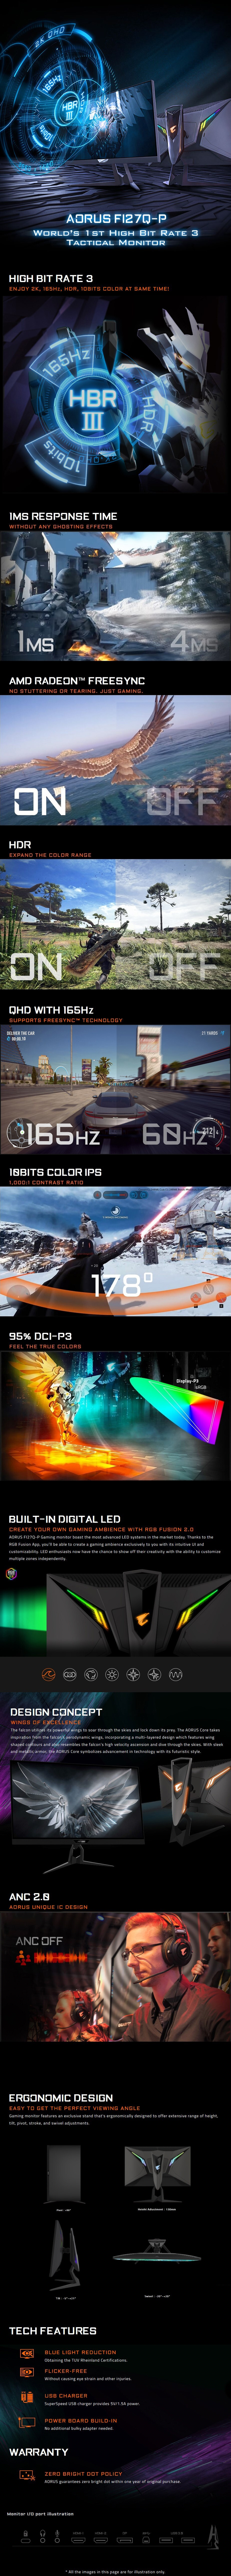 27 gigabyte fi27q-p aorus qhd freesync ips gaming monitor with high bit rate 3